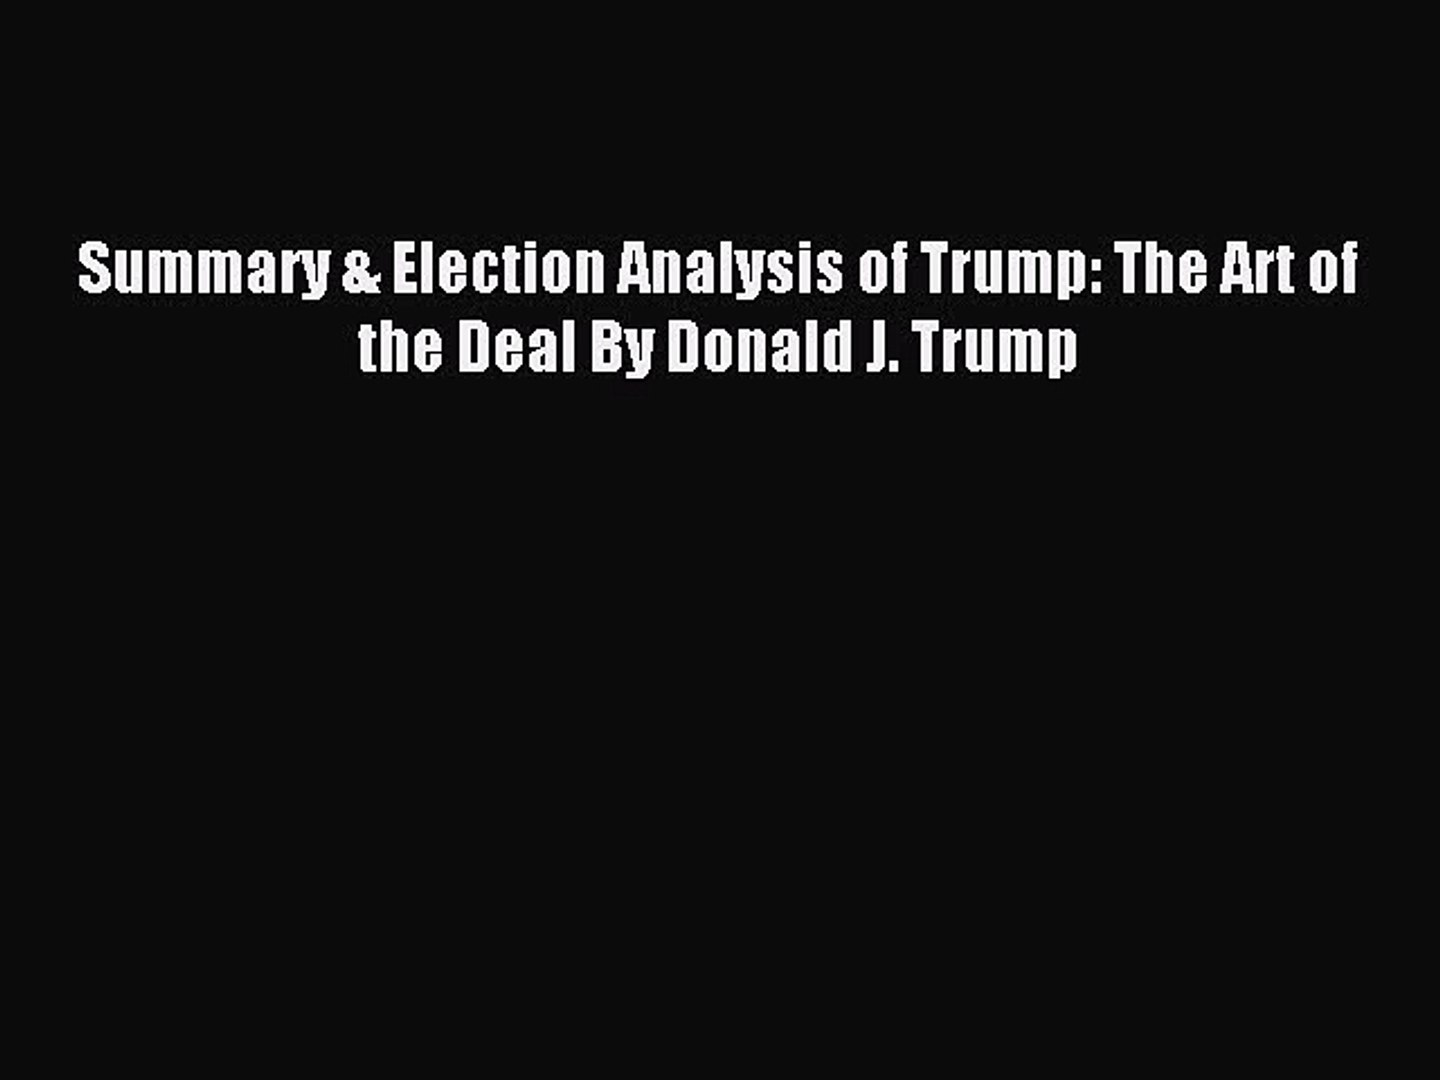 Includes Analysis Summary of The Art of the Deal by Donald Trump